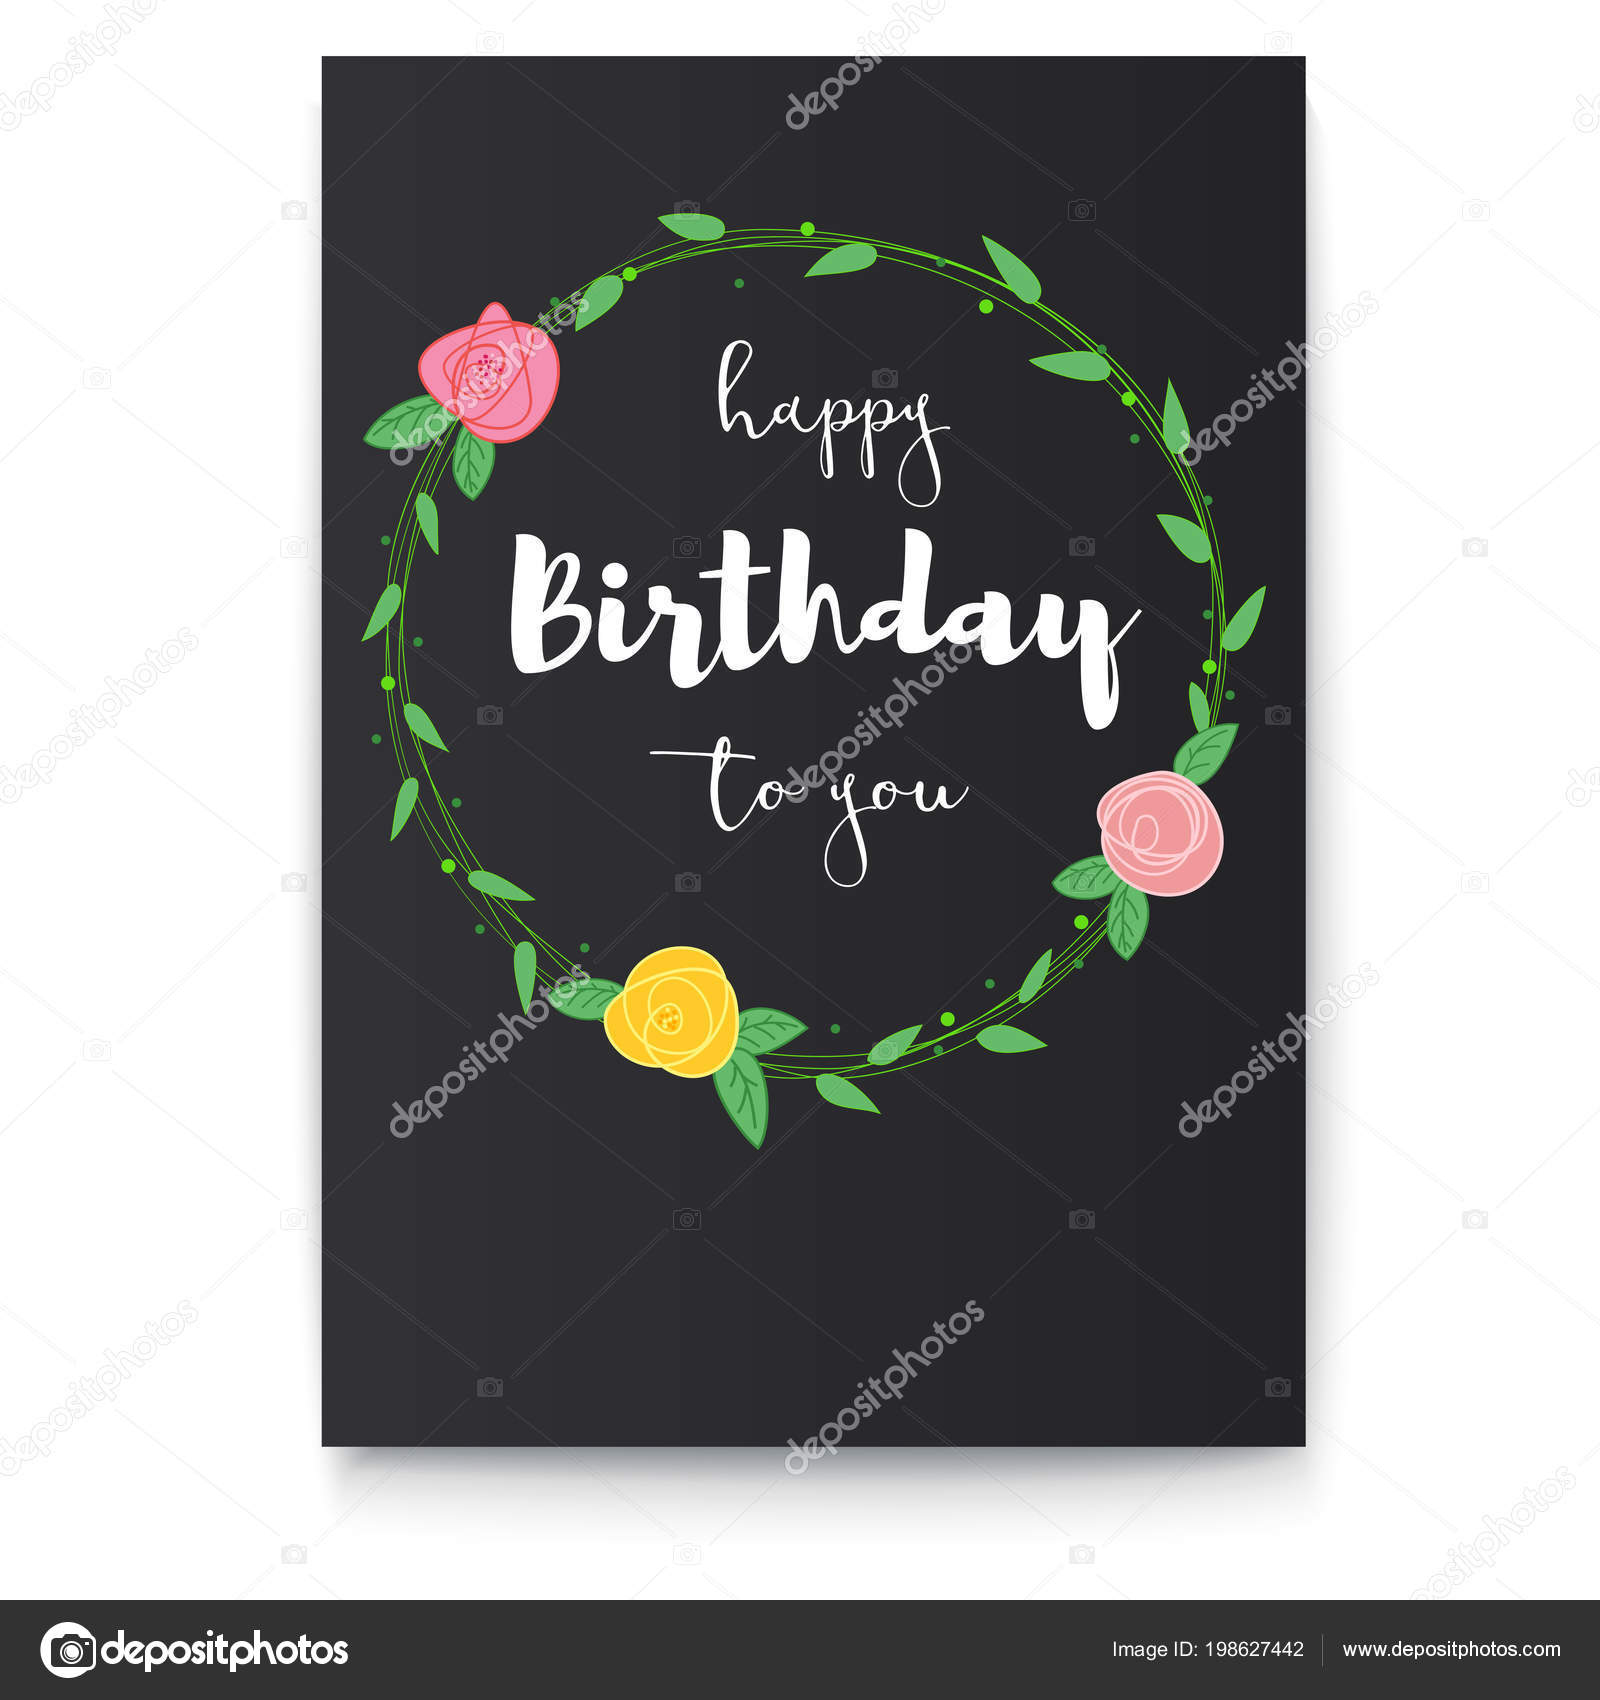 Handwritten lettering inscription of happy birthday on black handwritten lettering inscription of happy birthday on black background poster with a congratulatory inscription and picture of flowers with foliage izmirmasajfo